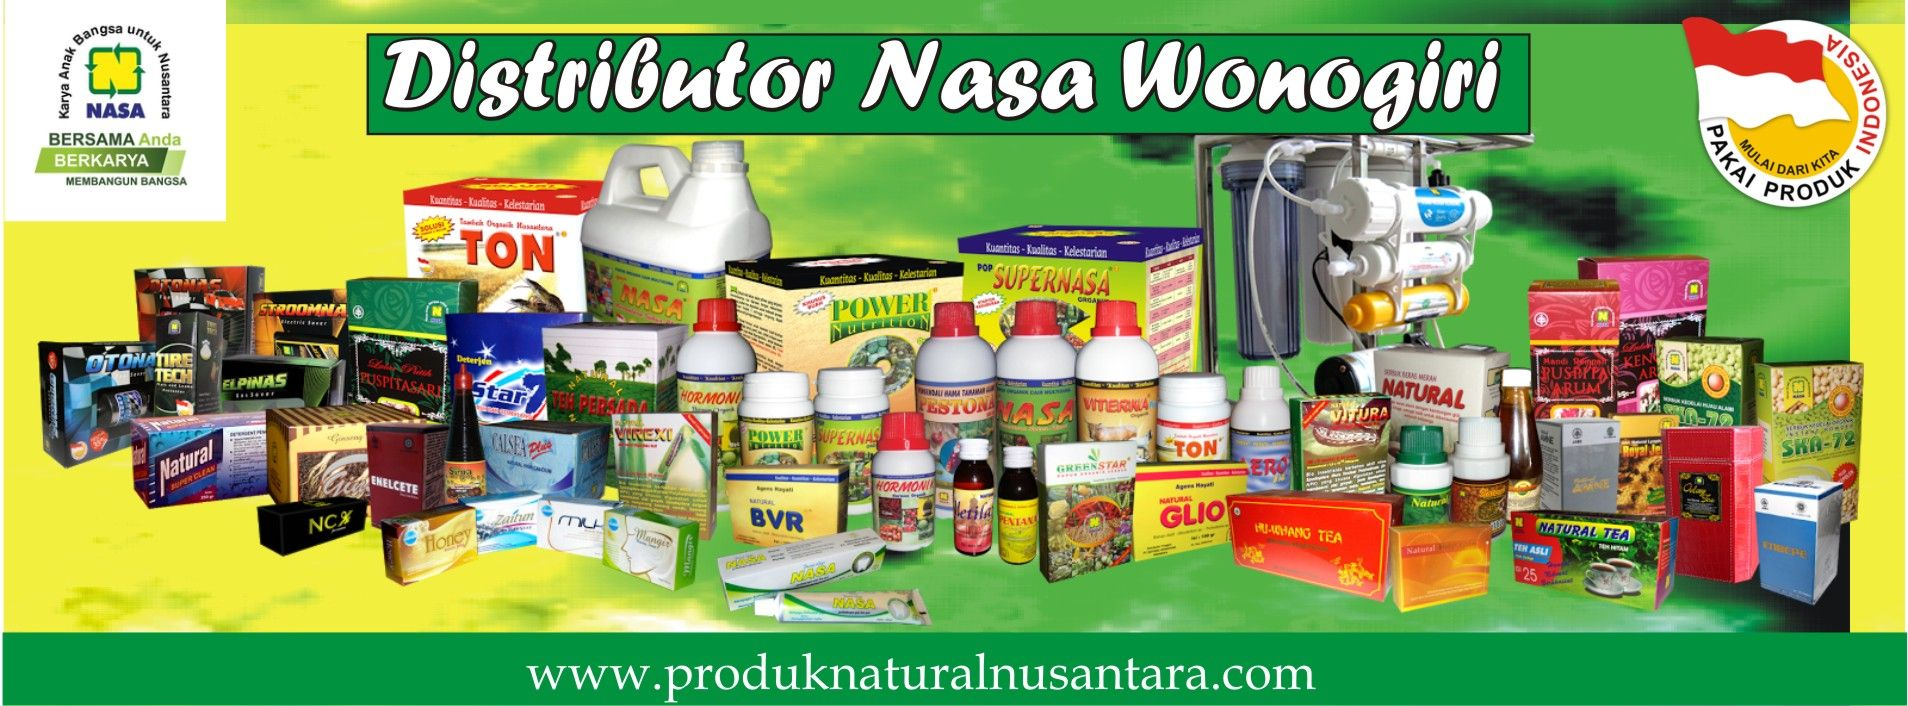 Download Gratis Contoh Banner Produk Nasa Full Hd Lengkap